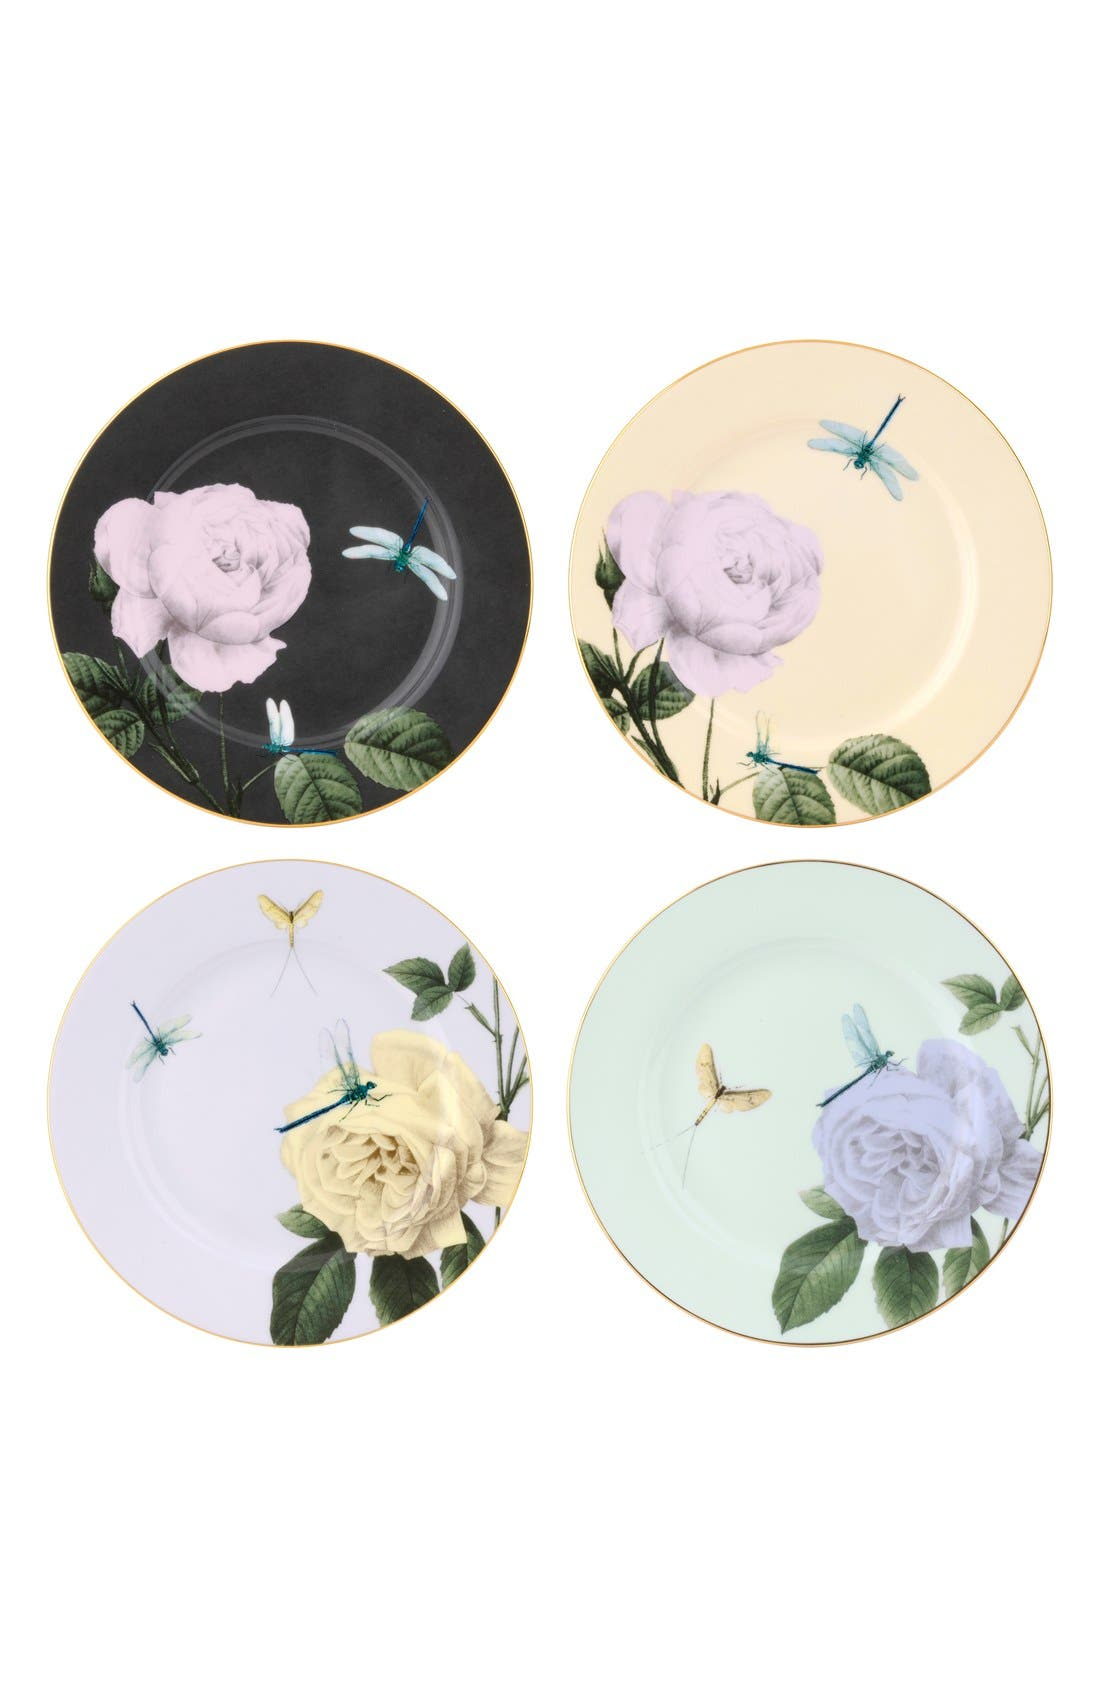 Alternate Image 1 Selected - Portmeirion x Ted Baker 'Rosie Lee' Bone China Salad Plates (Set of 4)